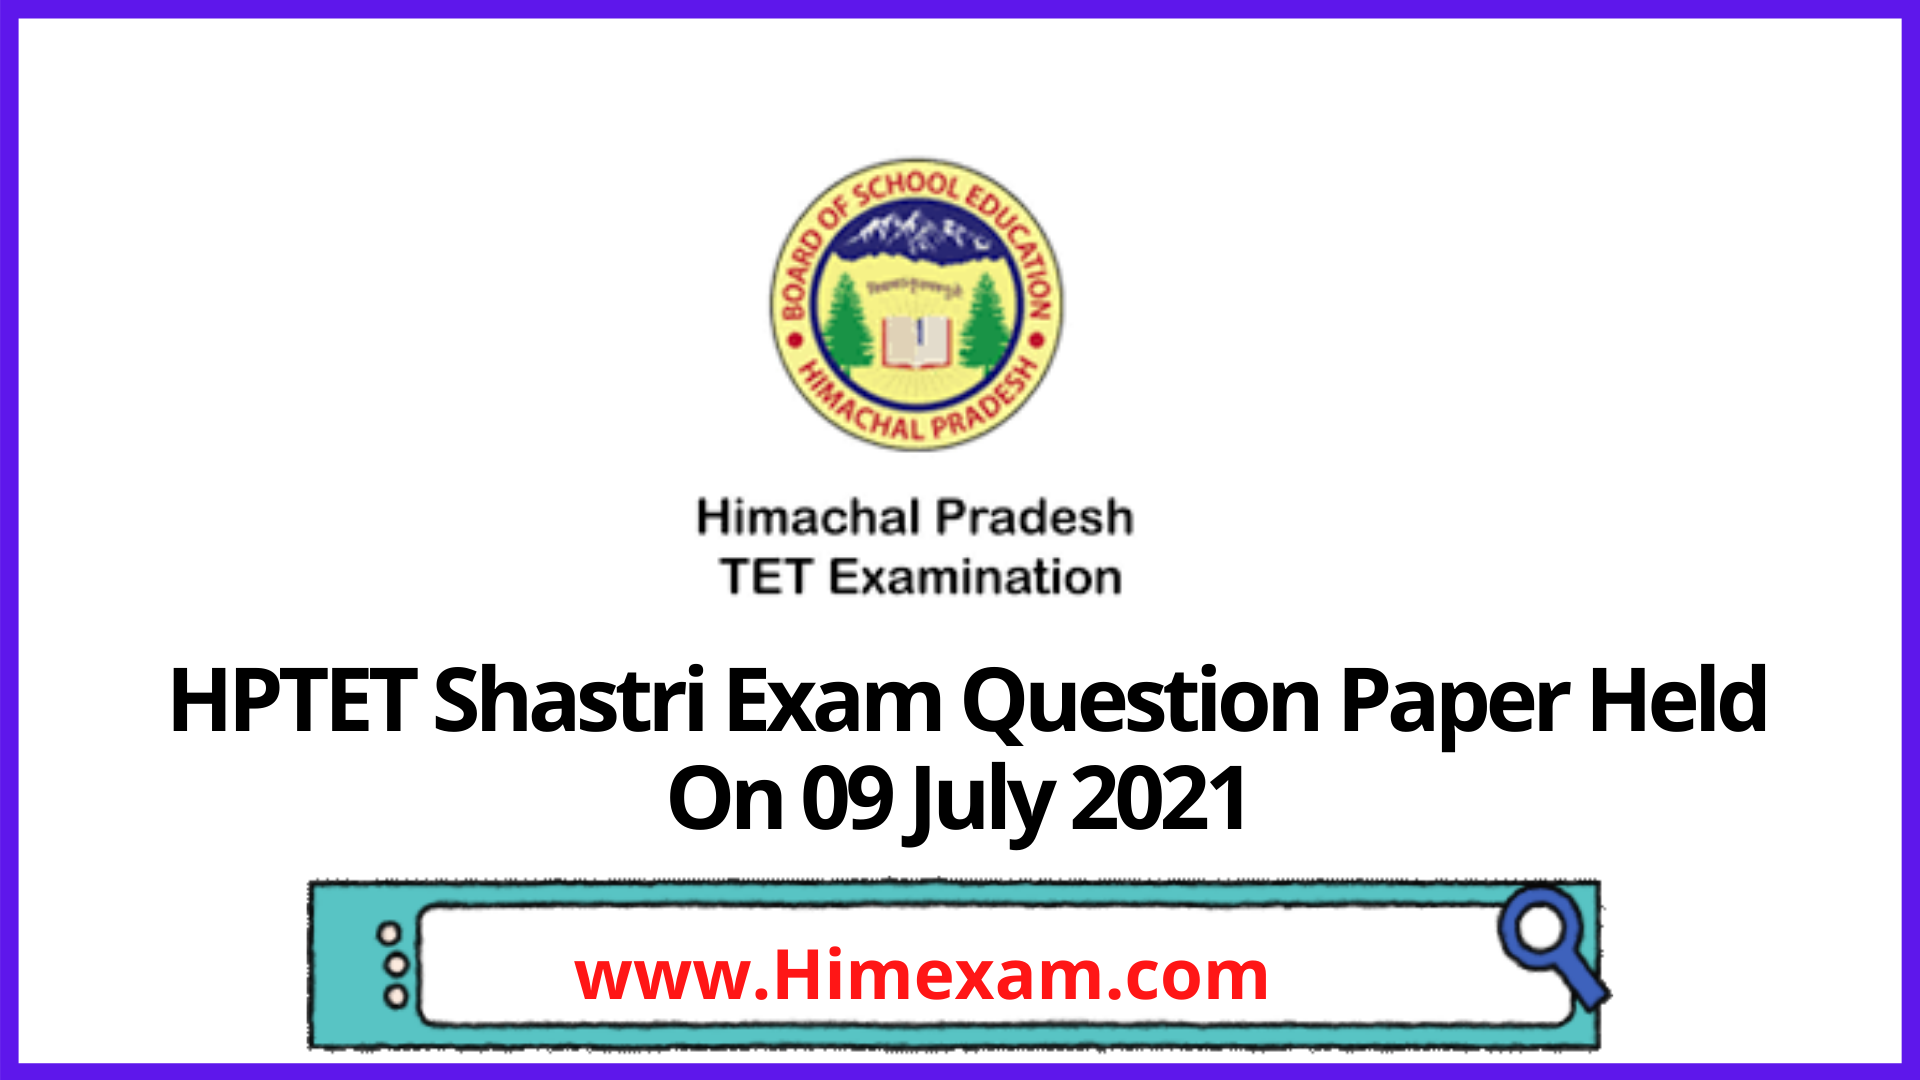 HPTET Shastri Exam Question Paper Held On 09 July 2021